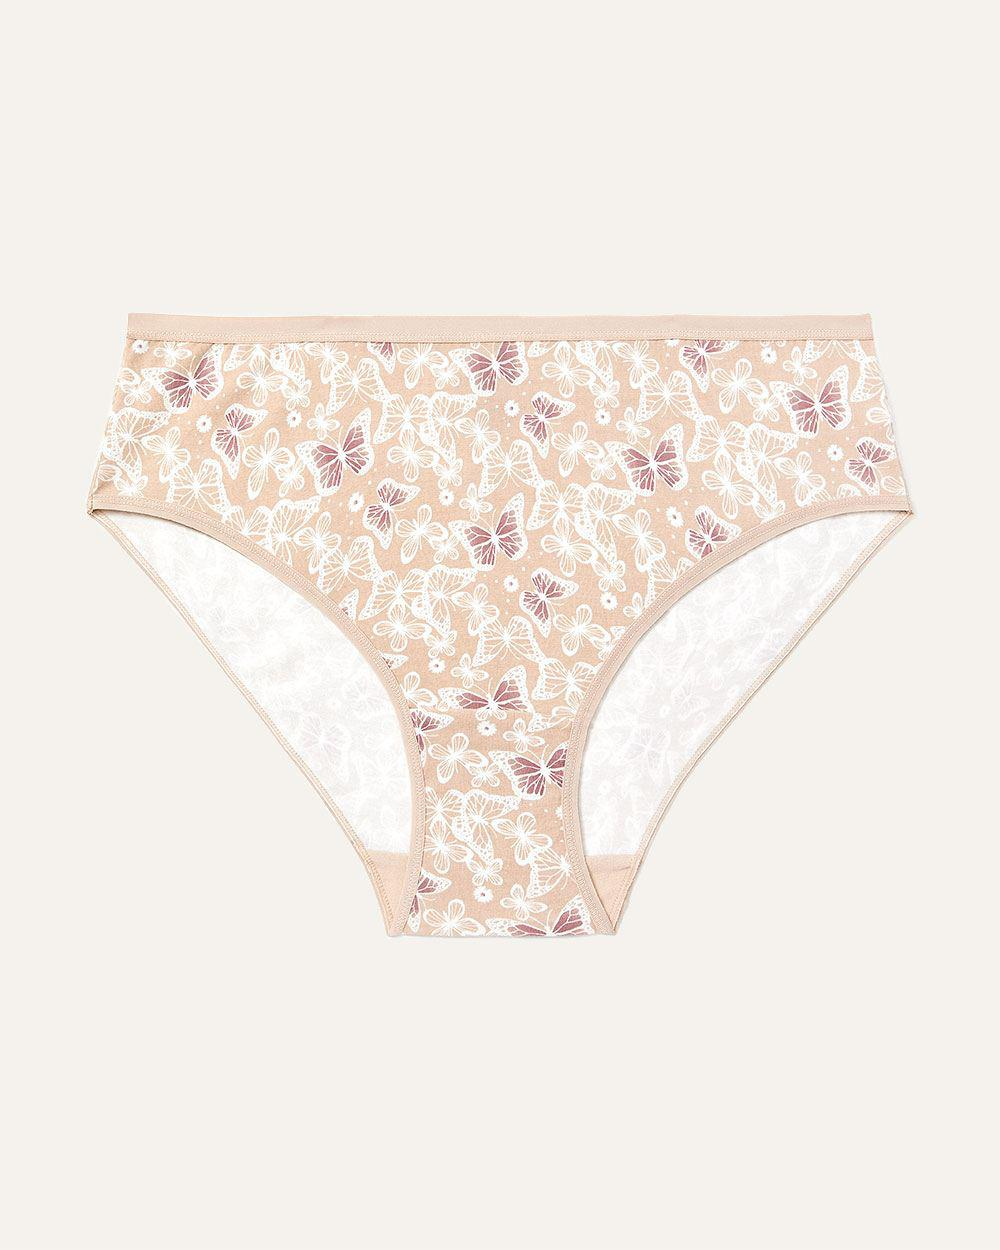 d1b2630b4 Lyst - Addition Elle High Cut Cotton Panty - Déesse Collection in White